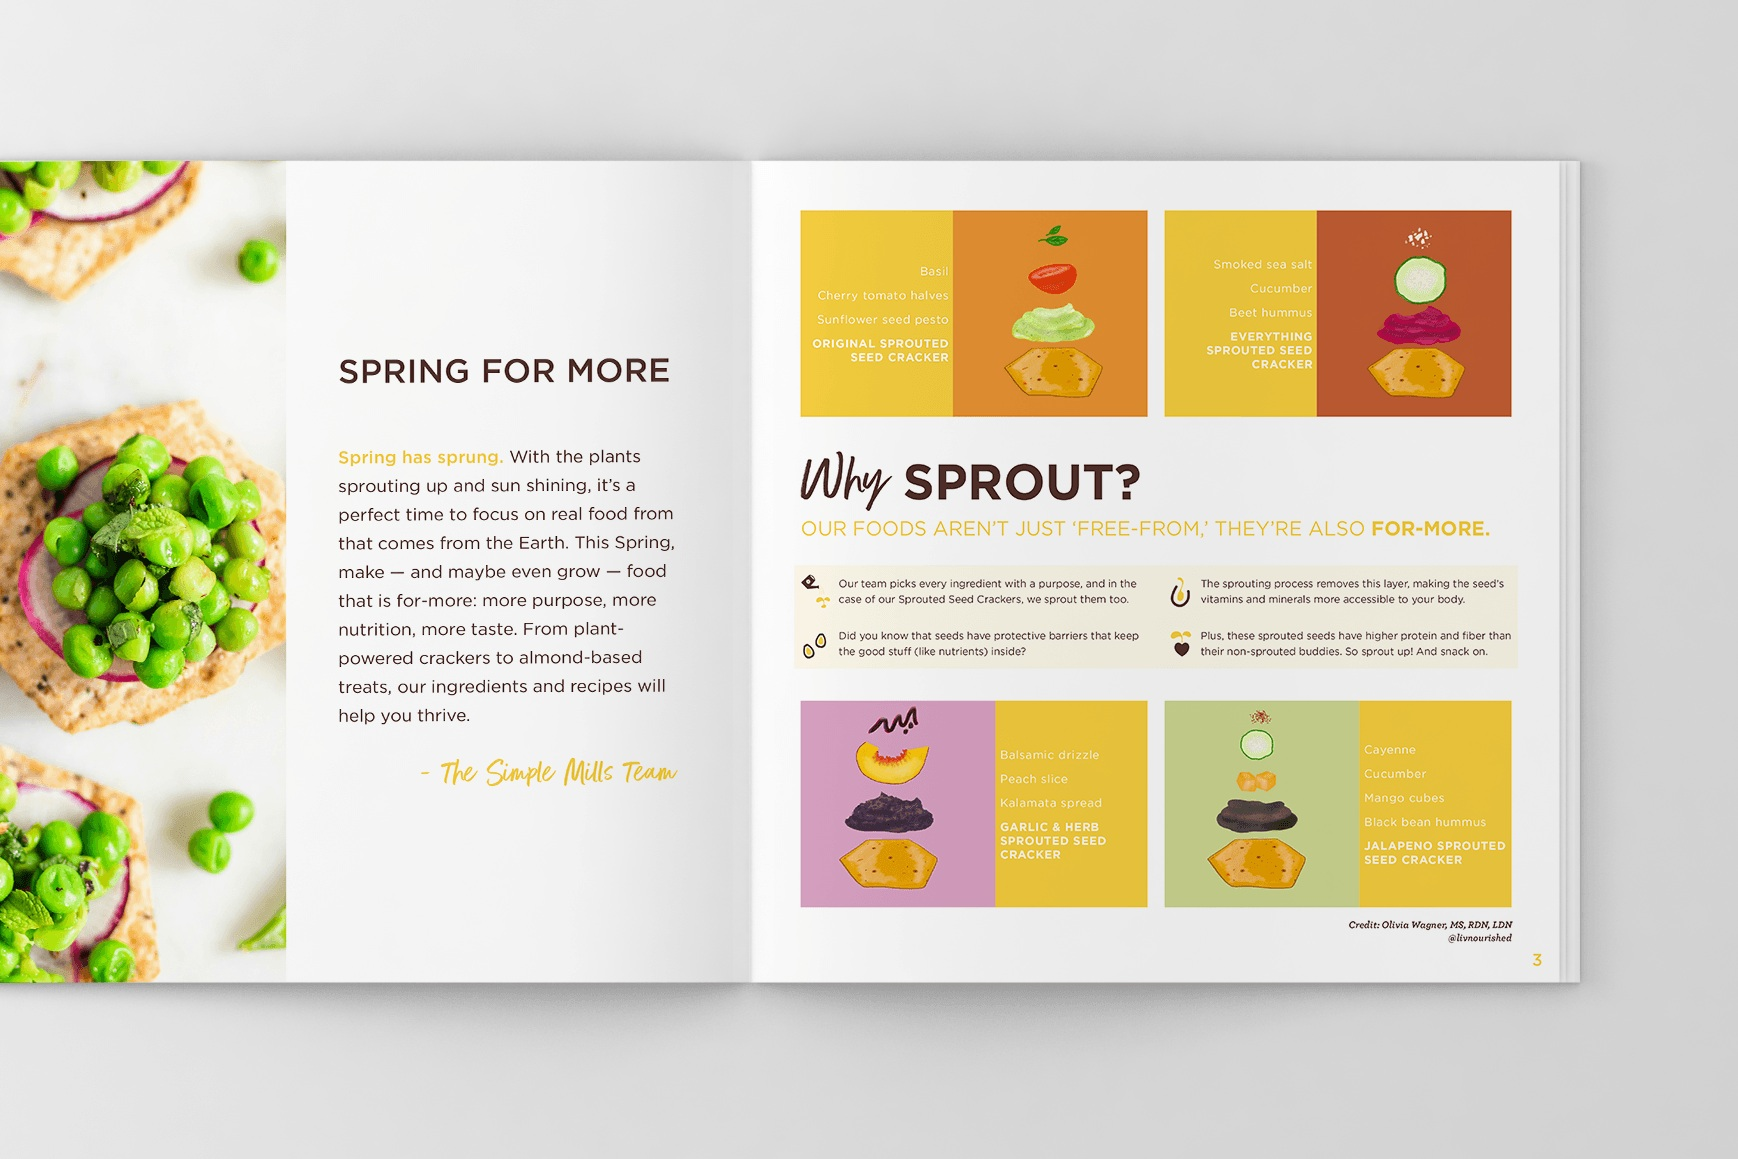 SIMPLE MILLS 2019 SPRING ISSUE:  PRINT LAYOUT + ILLUSTRATION